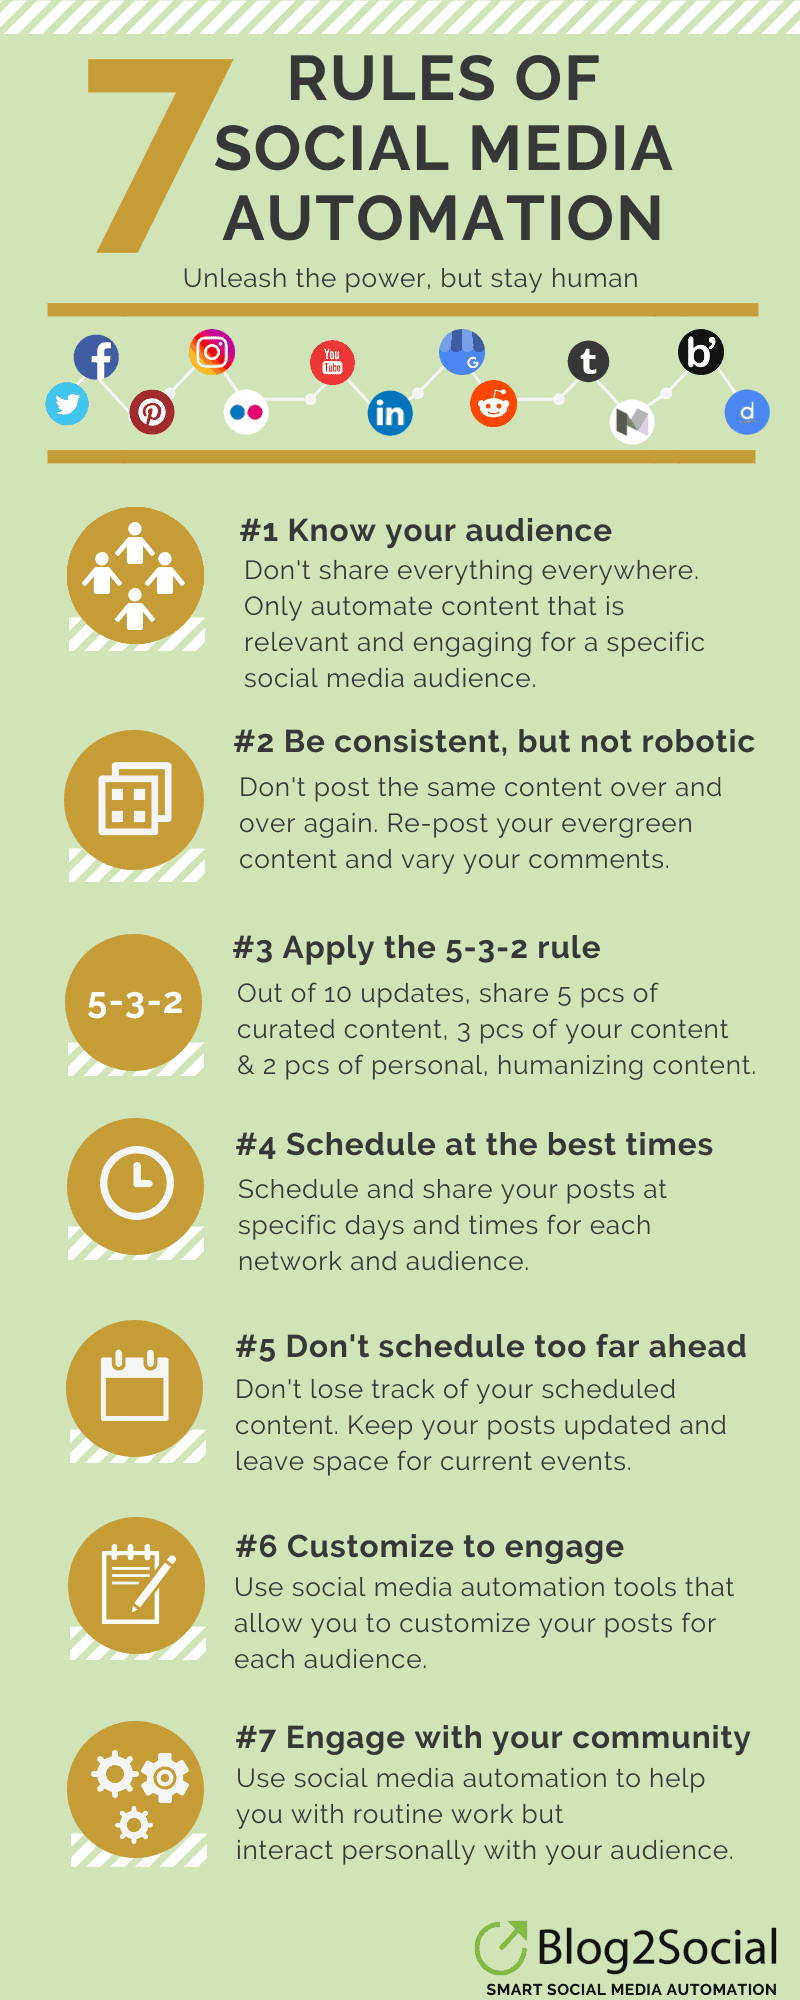 Learn more about the rules of social media automation in this great infographic!